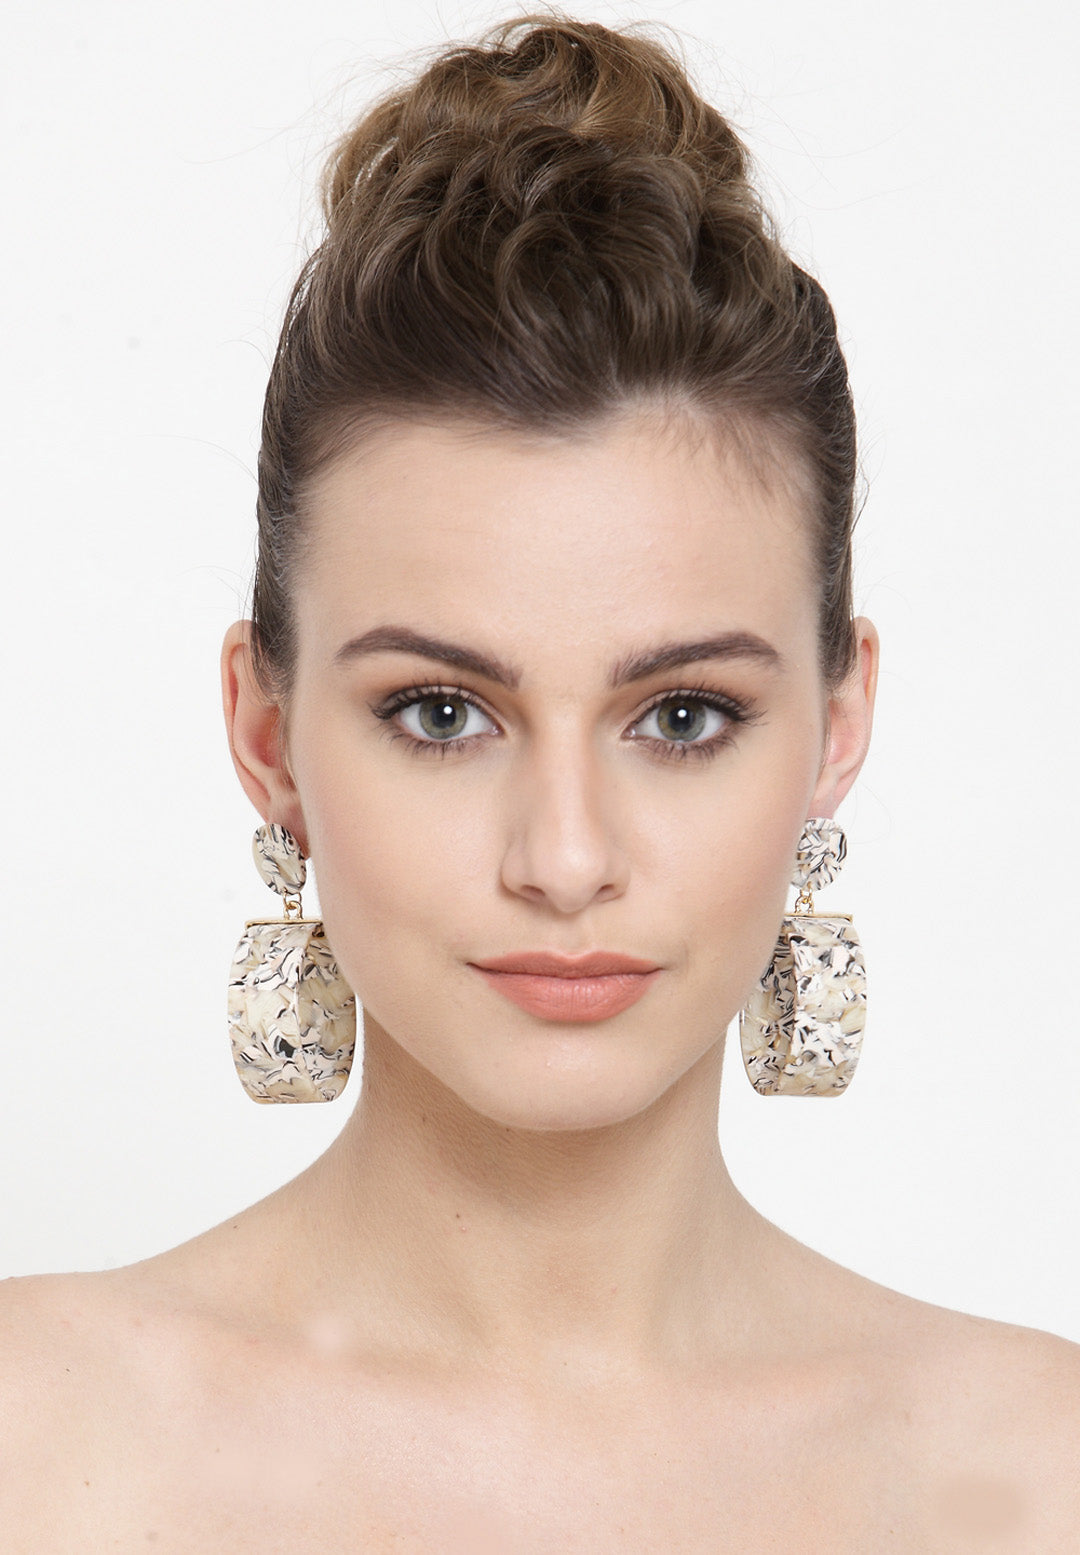 Avant-Garde Paris Statement Bohemian Cute Acrylic Big Hoop Earrings